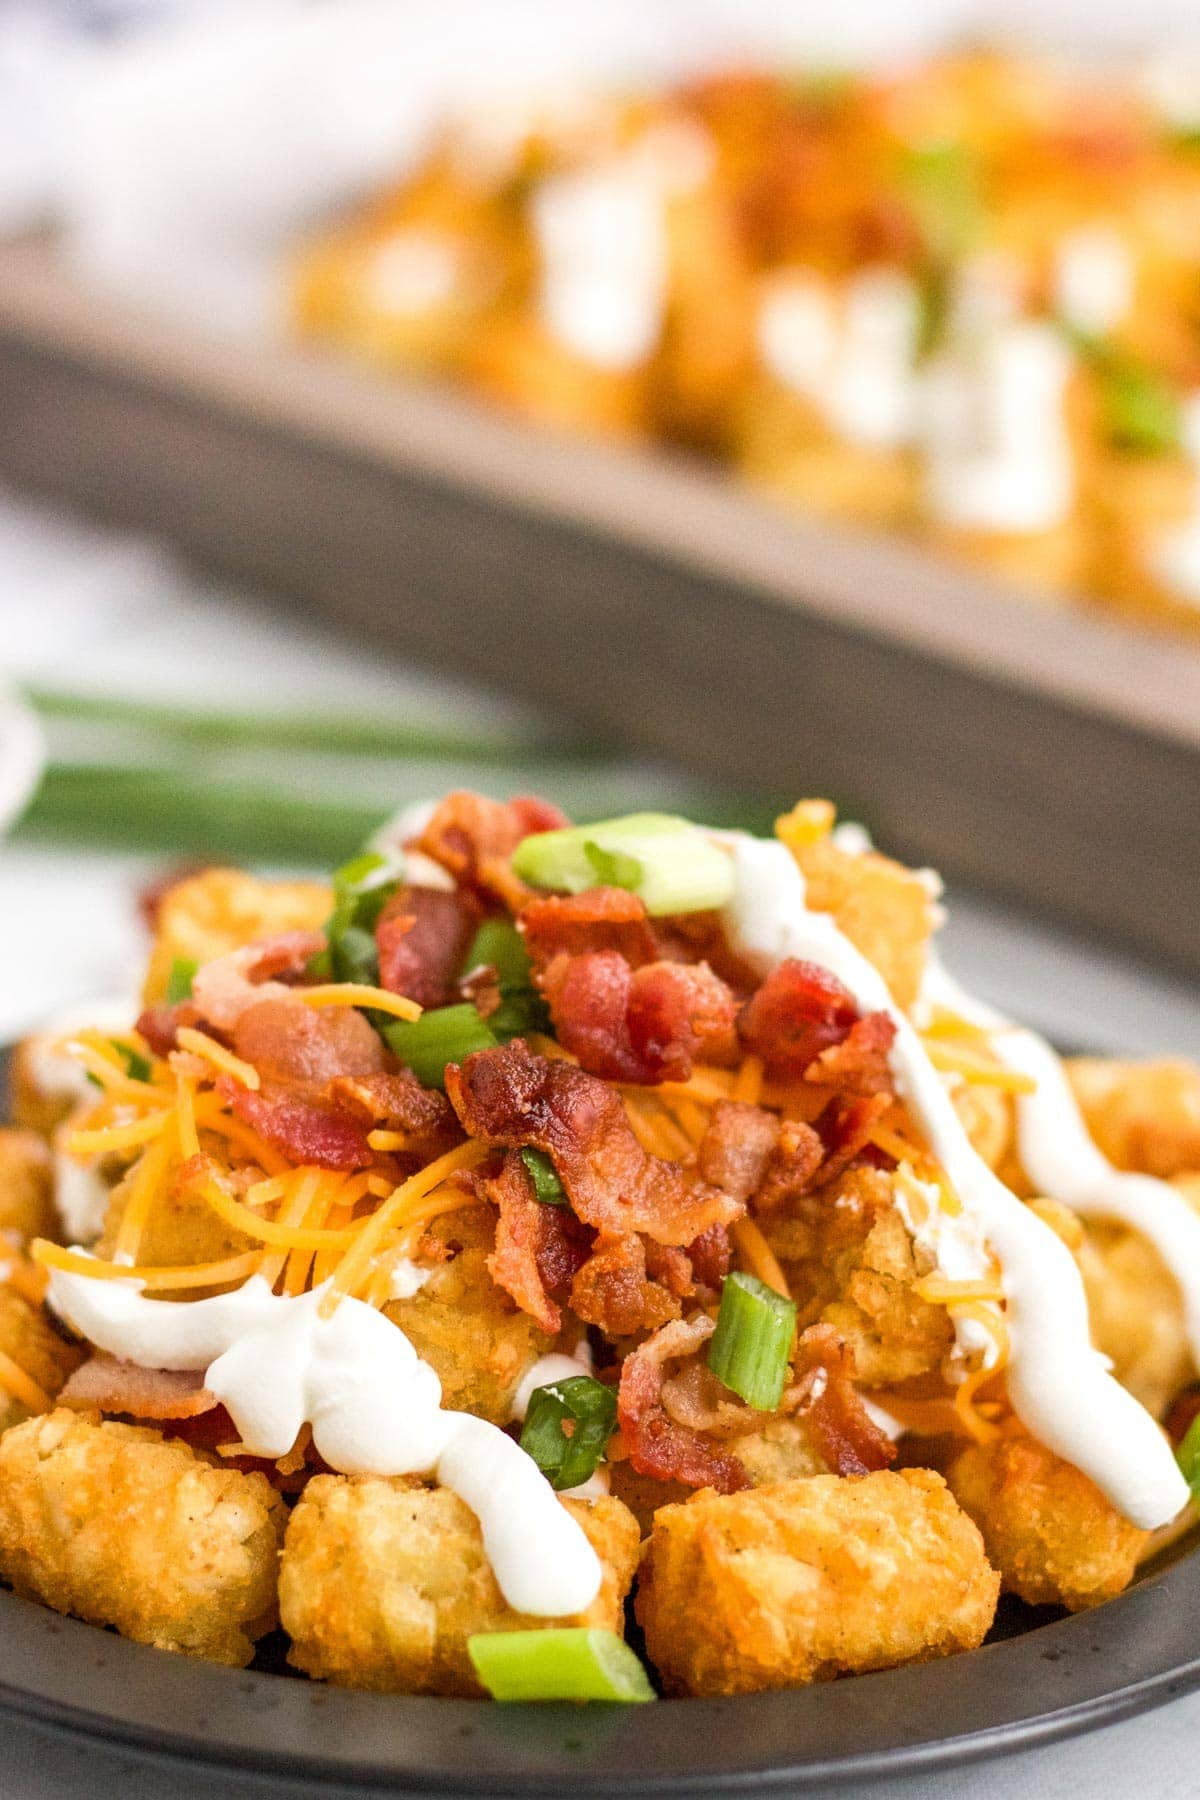 side view of stacked totchos or tater tots with cheese, bacon, sour cream and onions